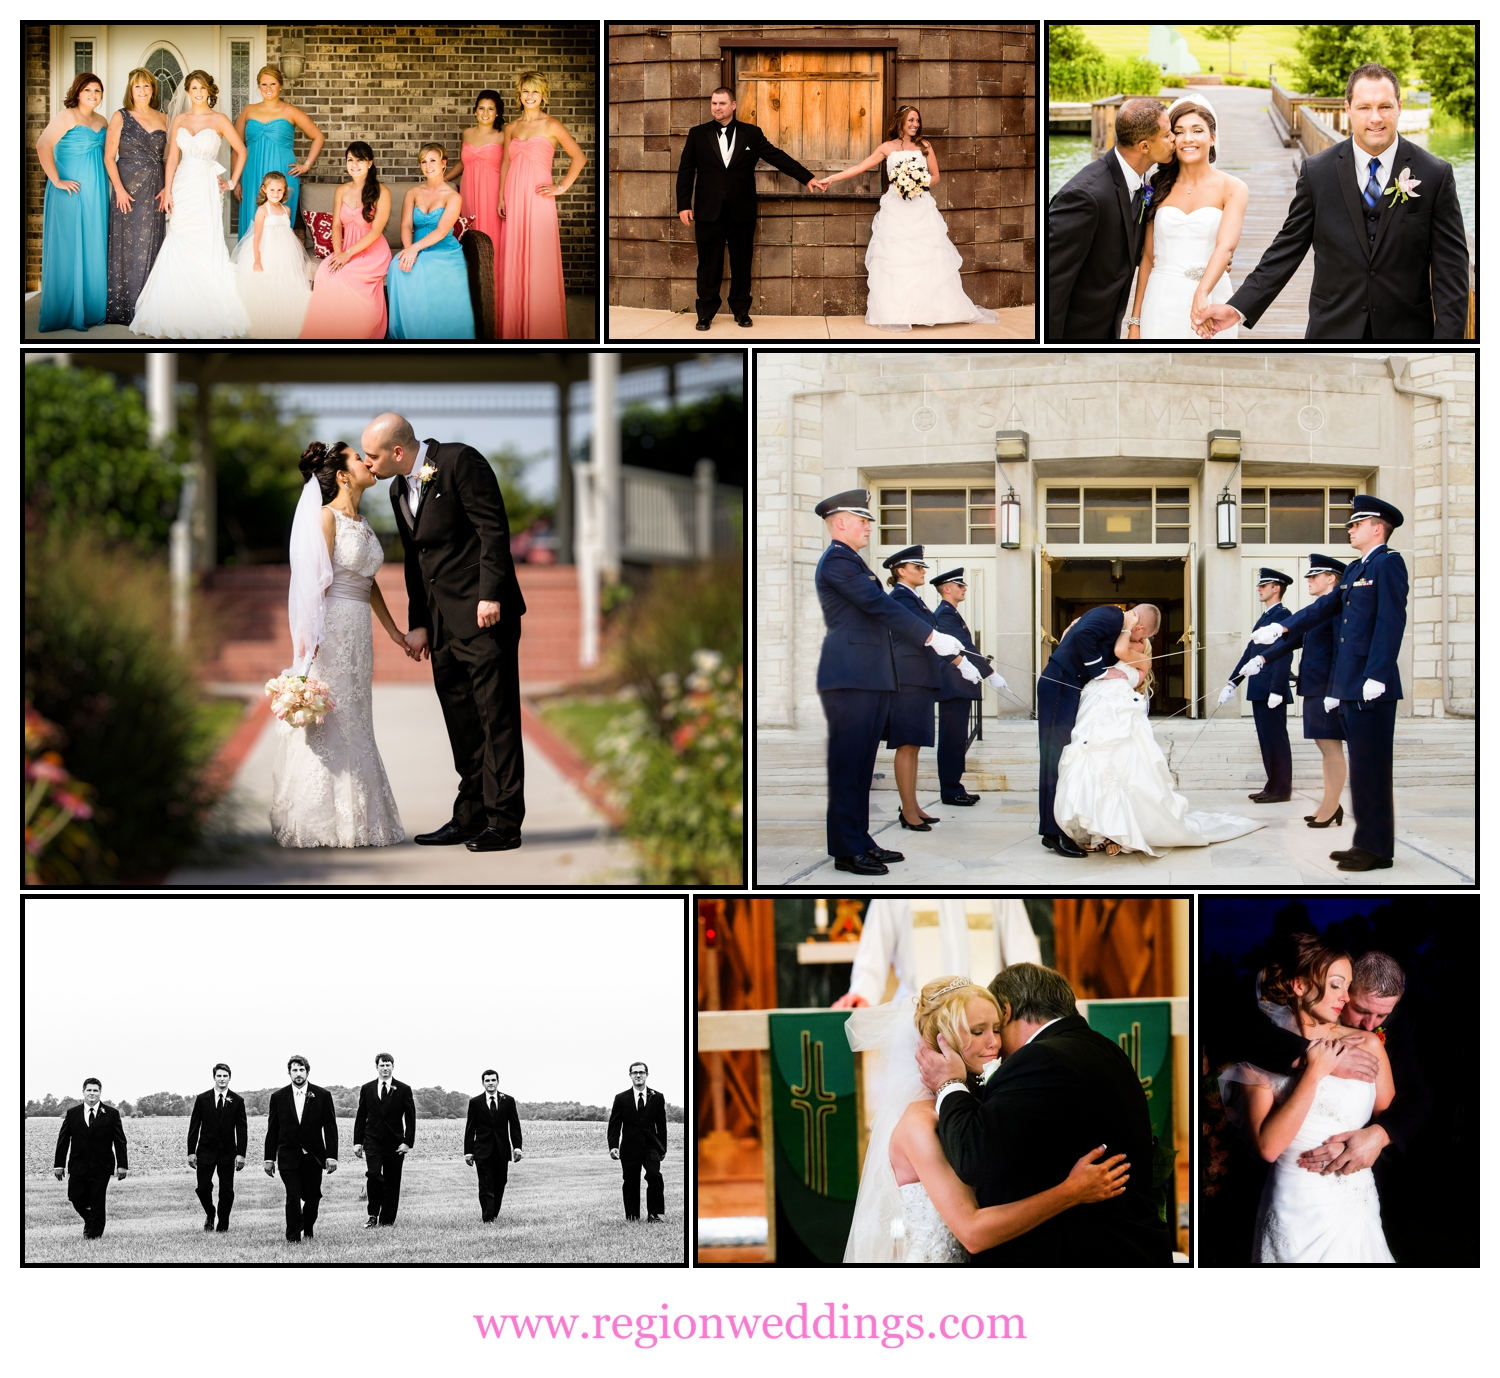 nwi-bridal-expo-collage2.jpg